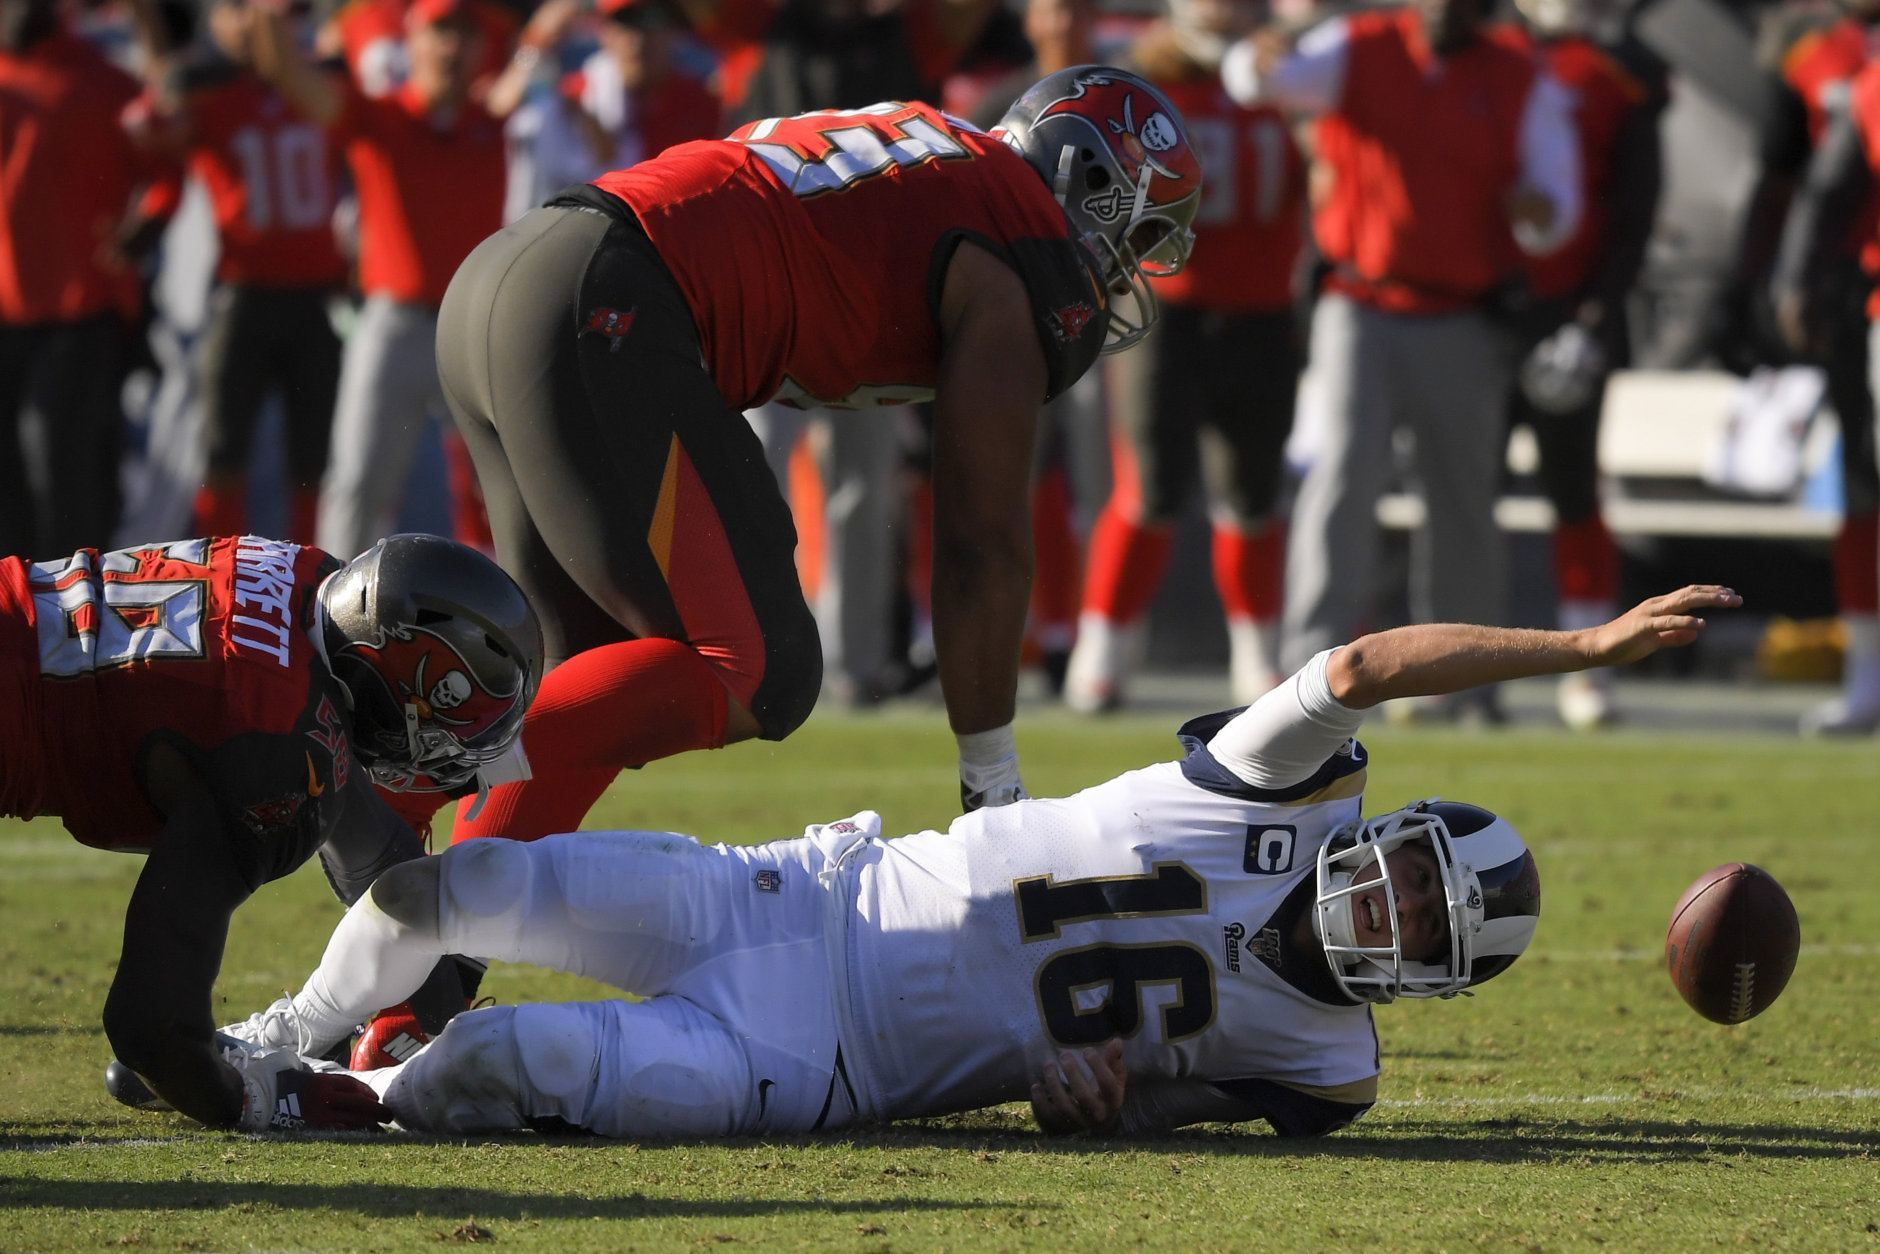 <p><b><i>Bucs 55</i></b><br /> <b><i>Rams 40</i></b></p> <p>Jared Goff threw for the eighth-most yards in NFL history but he turned the ball over four times and his defense allowed the most points scored on the Rams in 63 years. Are the Bucs actually good or is this an aberration? We&#8217;ll find out in New Orleans next week.</p>